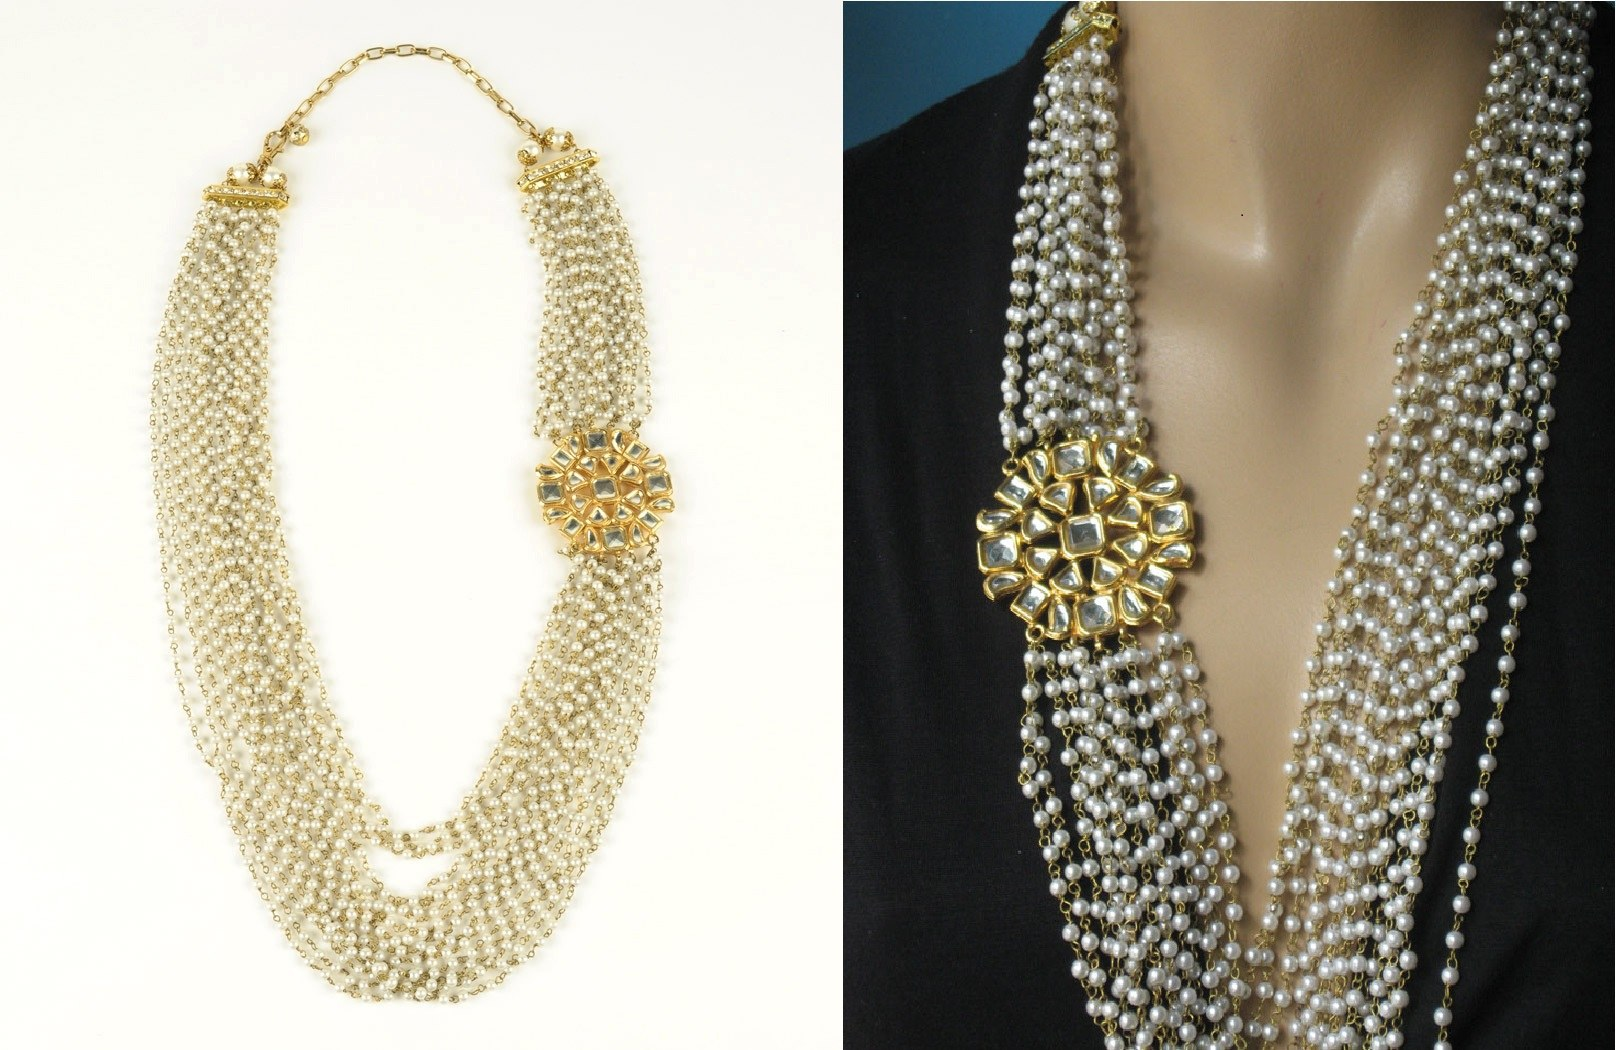 Online jewellery shopping of tanishq